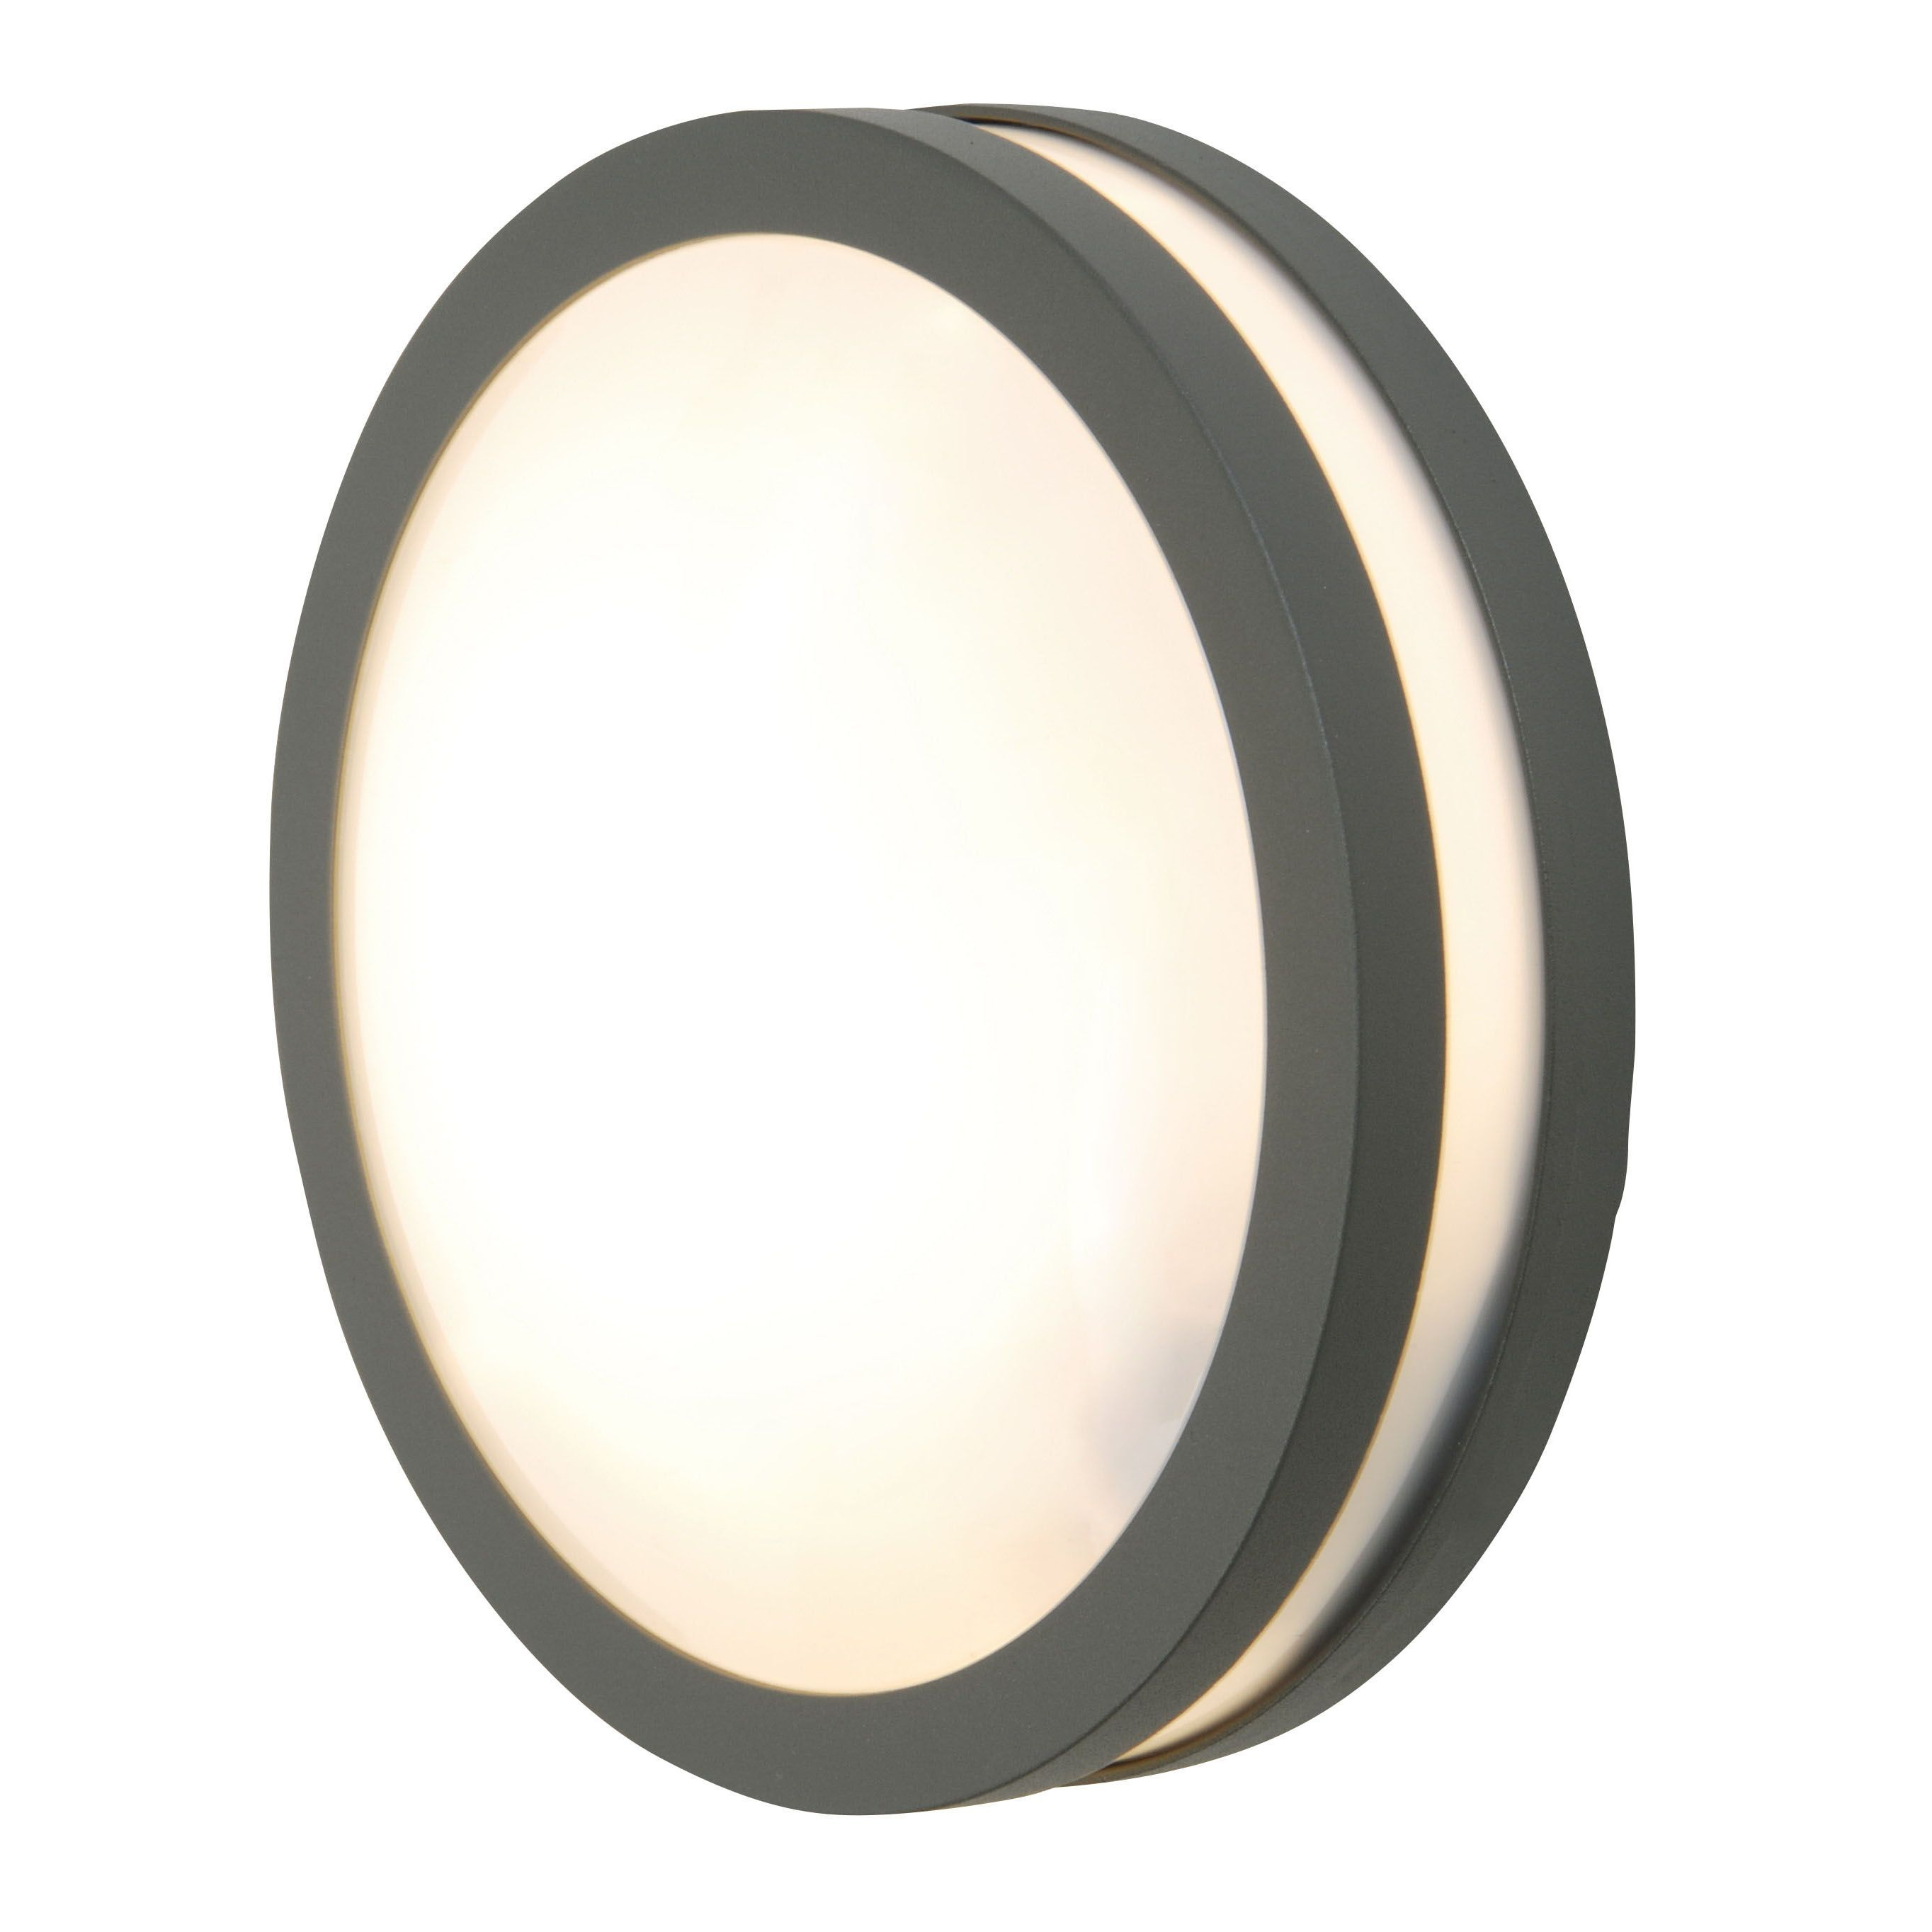 Blooma komet grey mains powered external wall light gray walls blooma komet grey mains powered external wall light aloadofball Choice Image